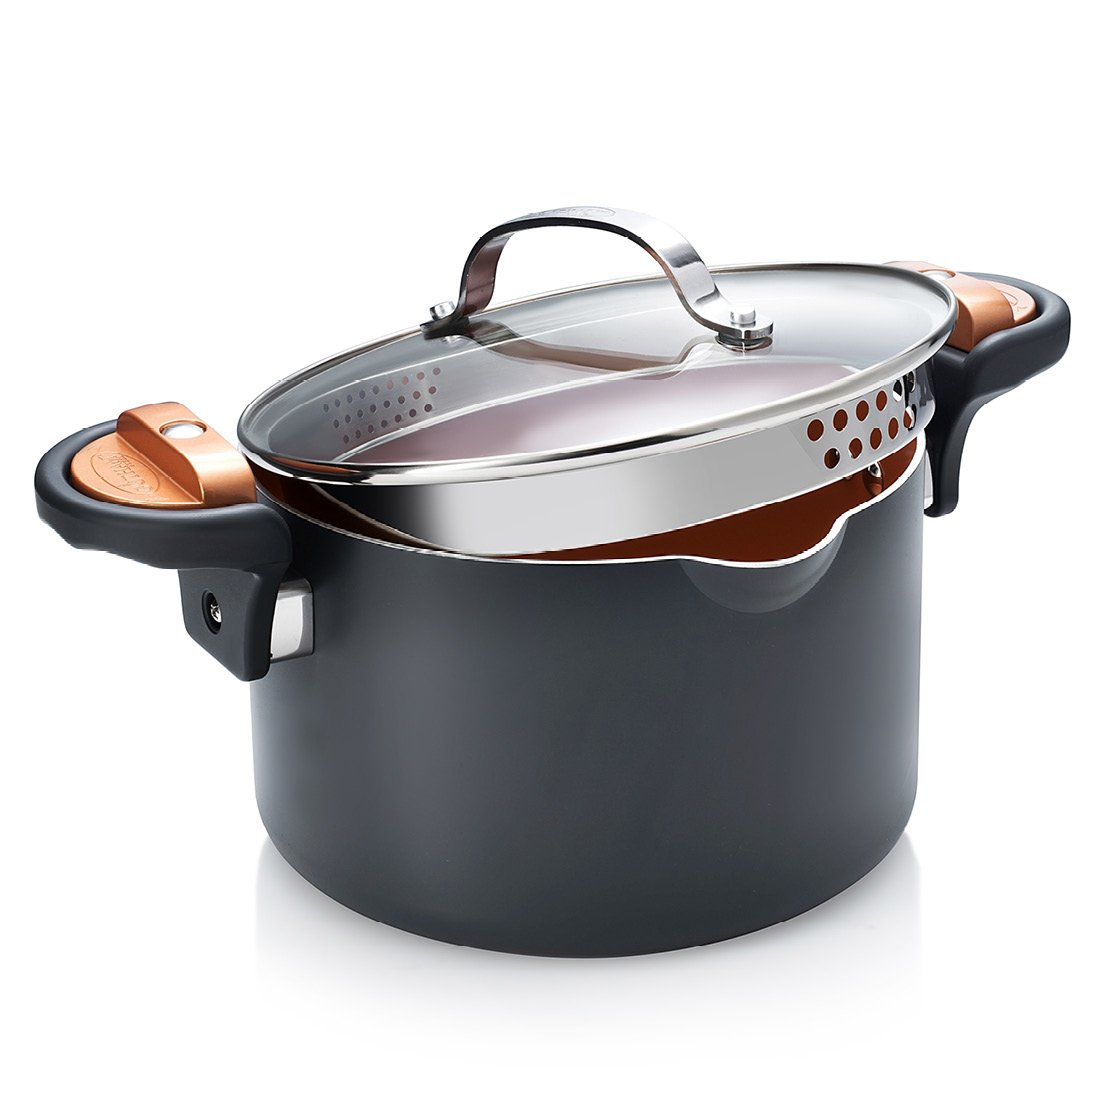 Gotham Steel Pasta Pot with Built-in Drainer / Strainer, 3.7 Litre Capacity Pasta Pan,Grey High Street TV GSPPIP